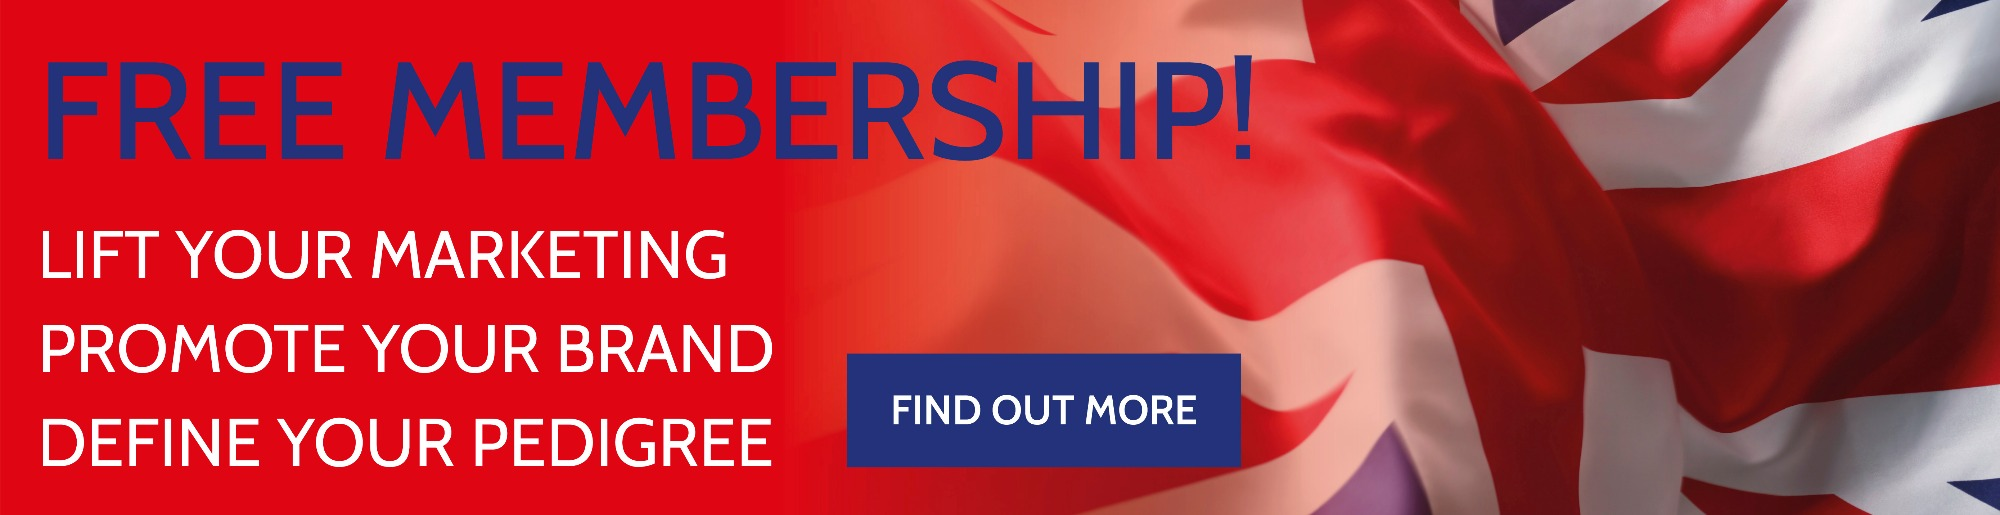 Free membership - Made in Britain logo